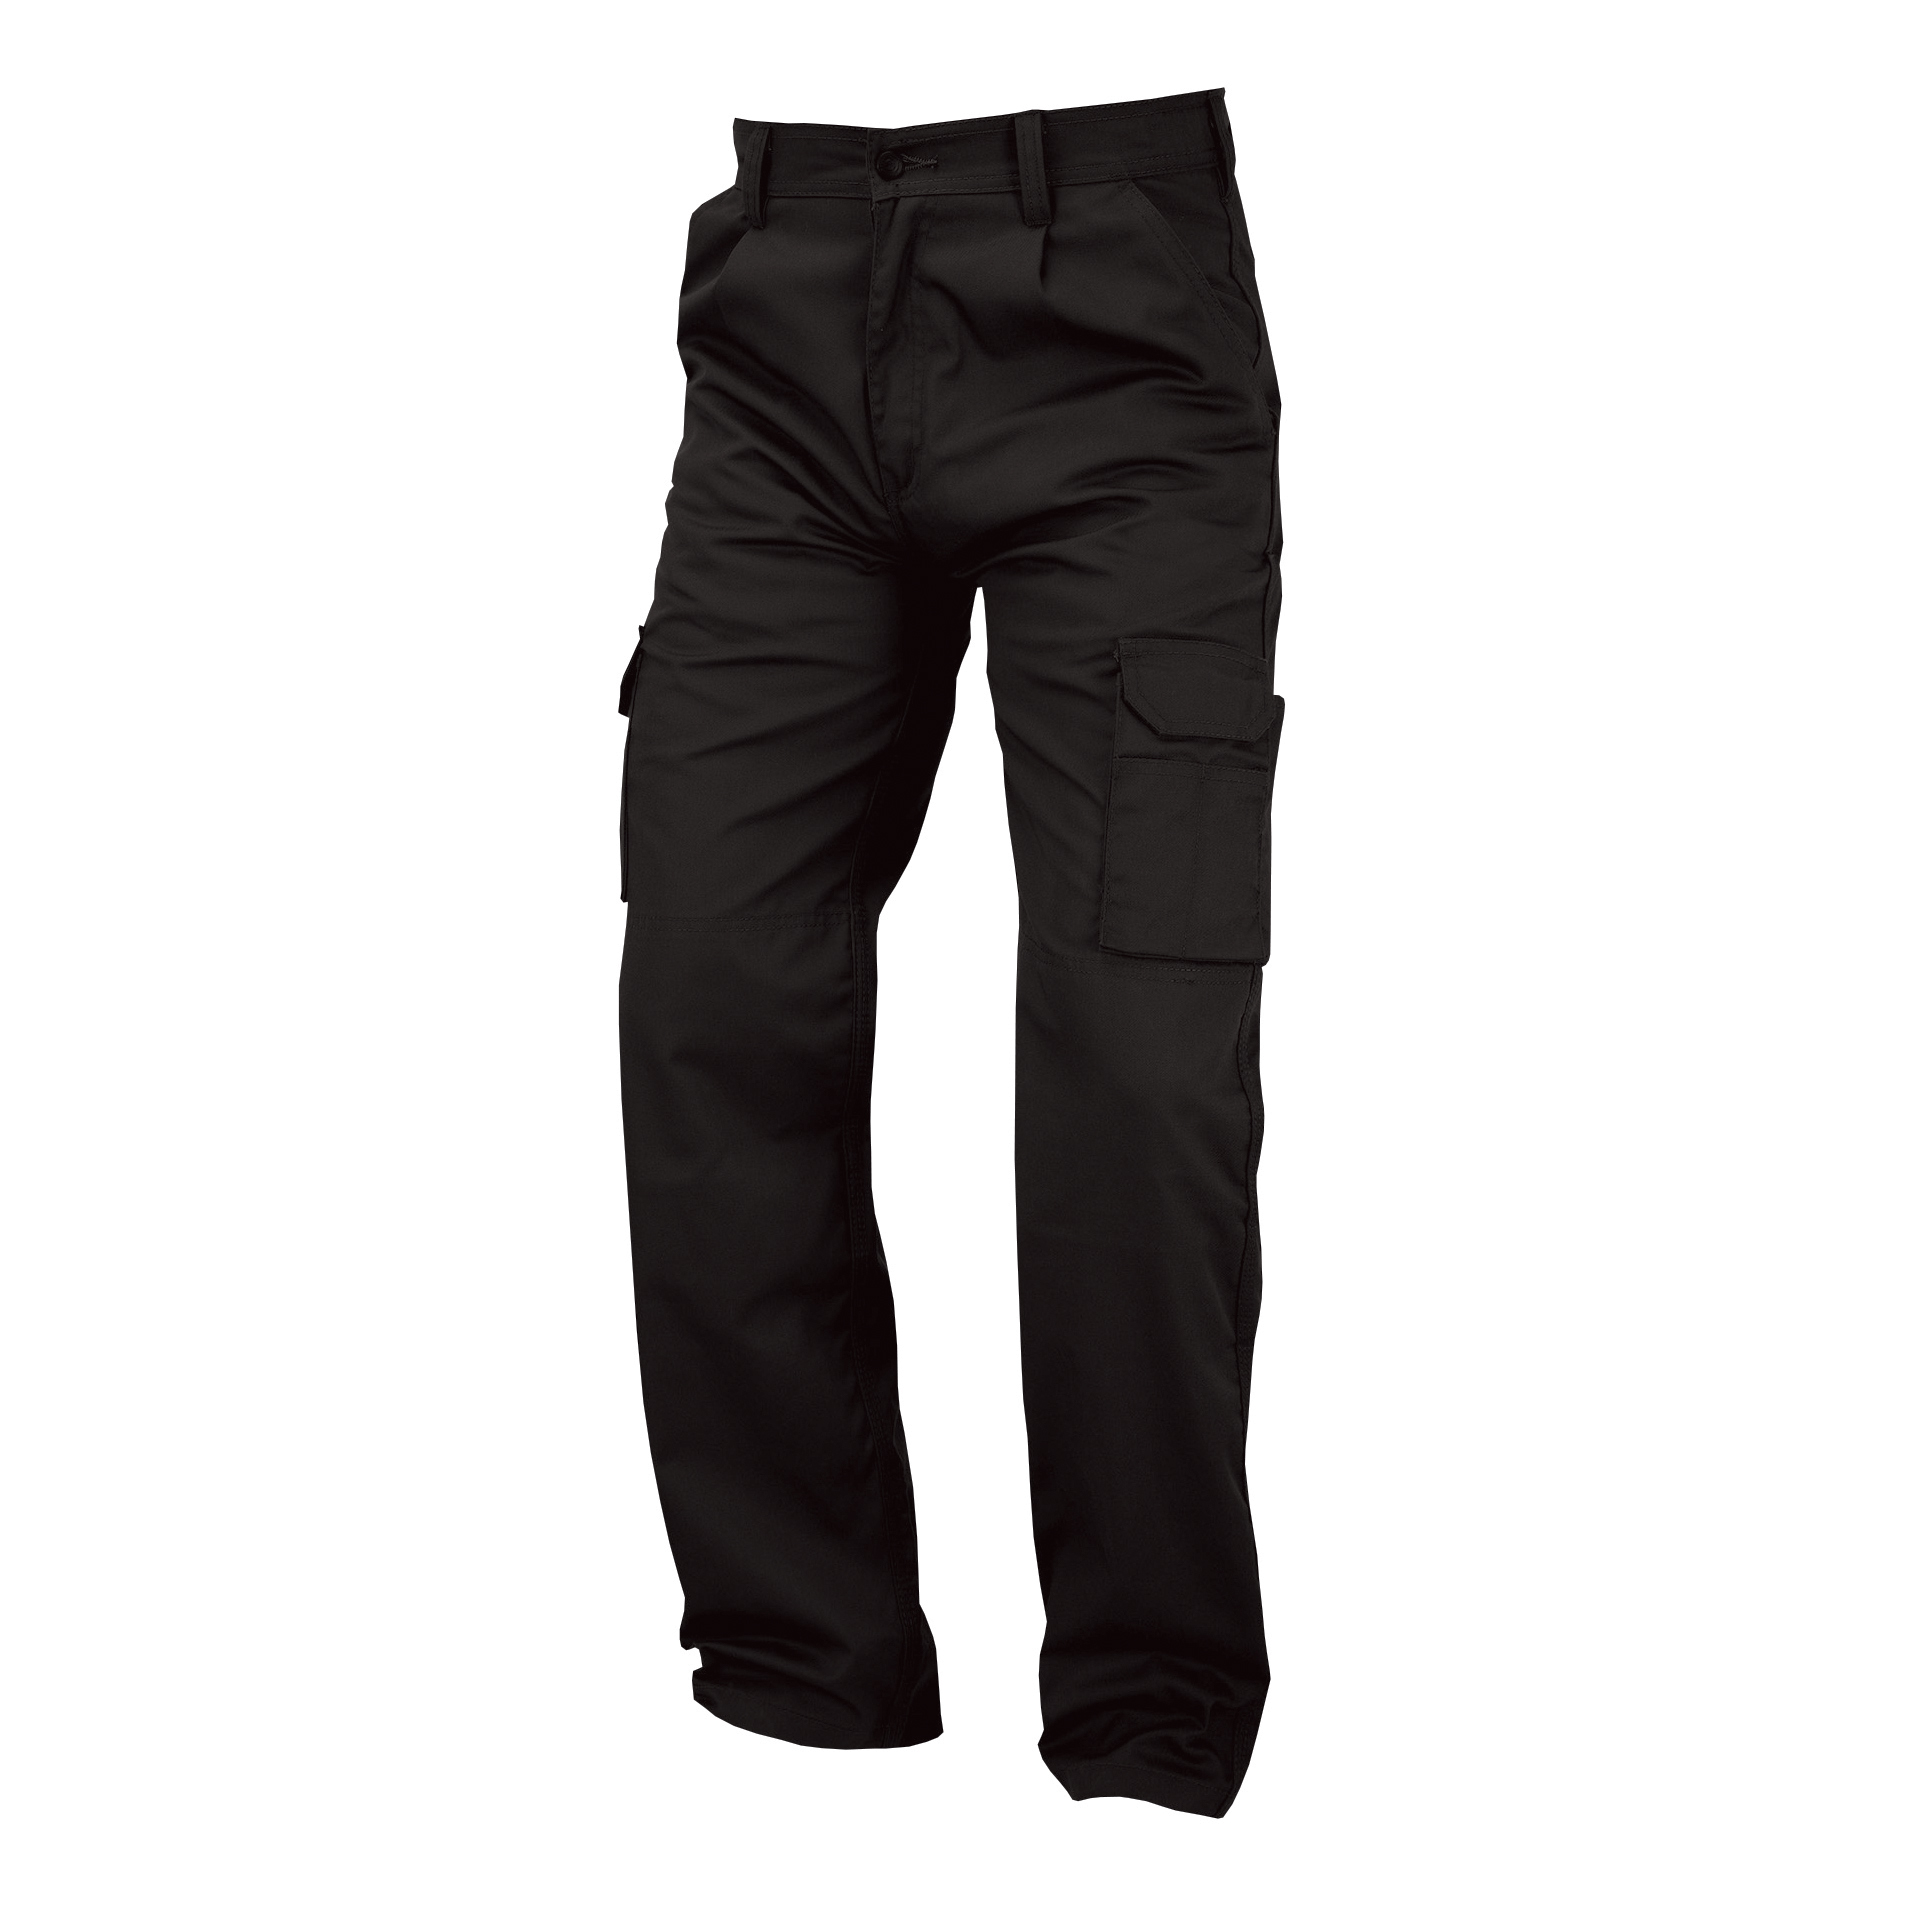 Combat / Cargo Combat Trousers Polycotton with Pockets Size 38in Long Black Ref PCTHWBL38T *1-3 Days Lead Time*